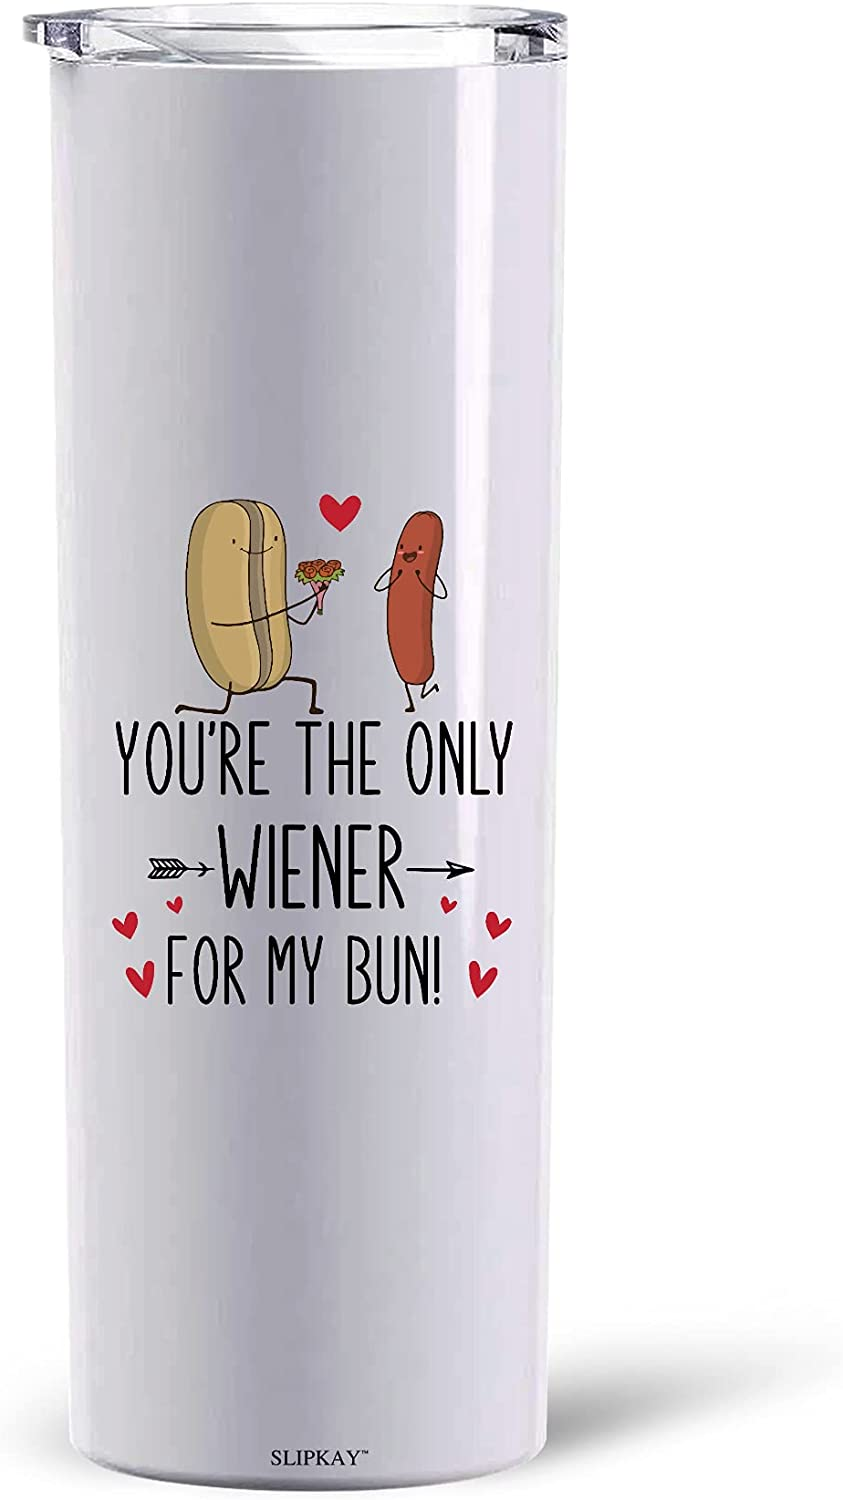 Youre The Only favorite Wiener For Bun Skinny My Tumbler 30oz Oklahoma City Mall